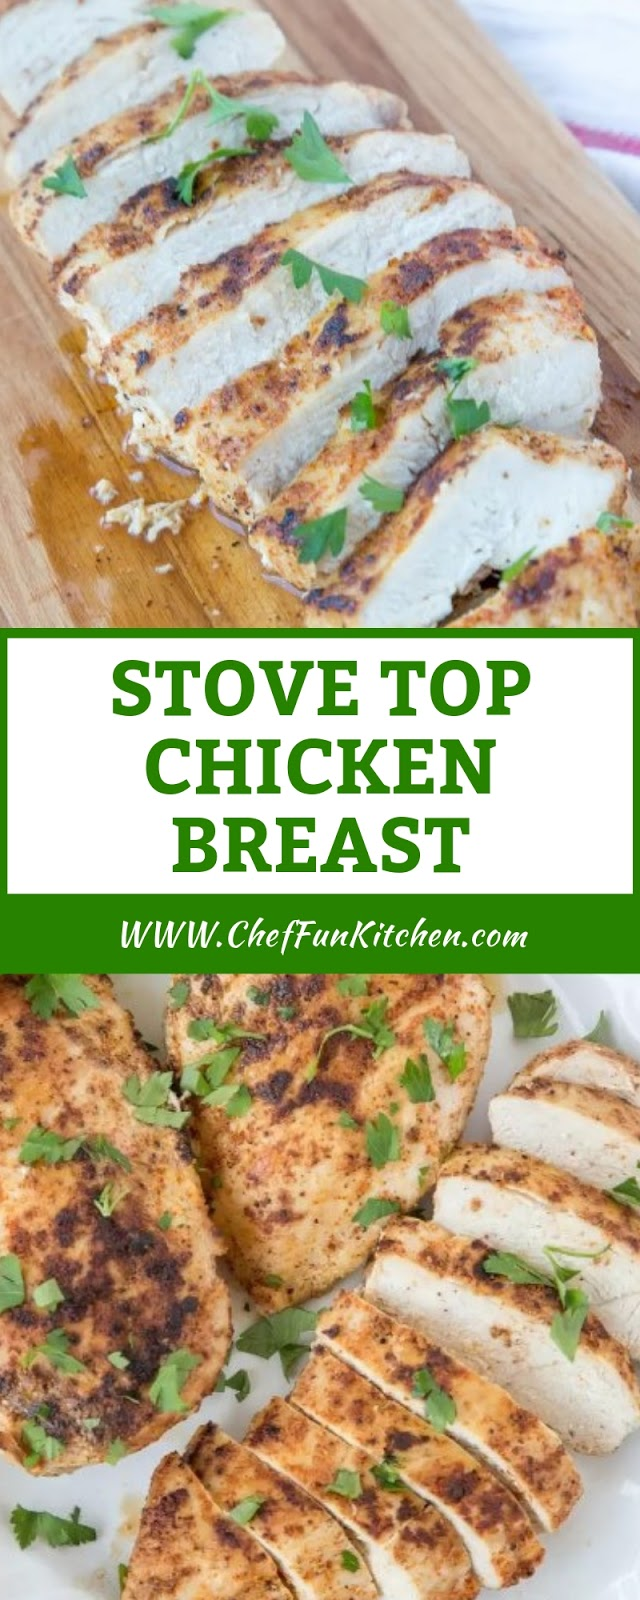 STOVE TOP CHICKEN BREAST